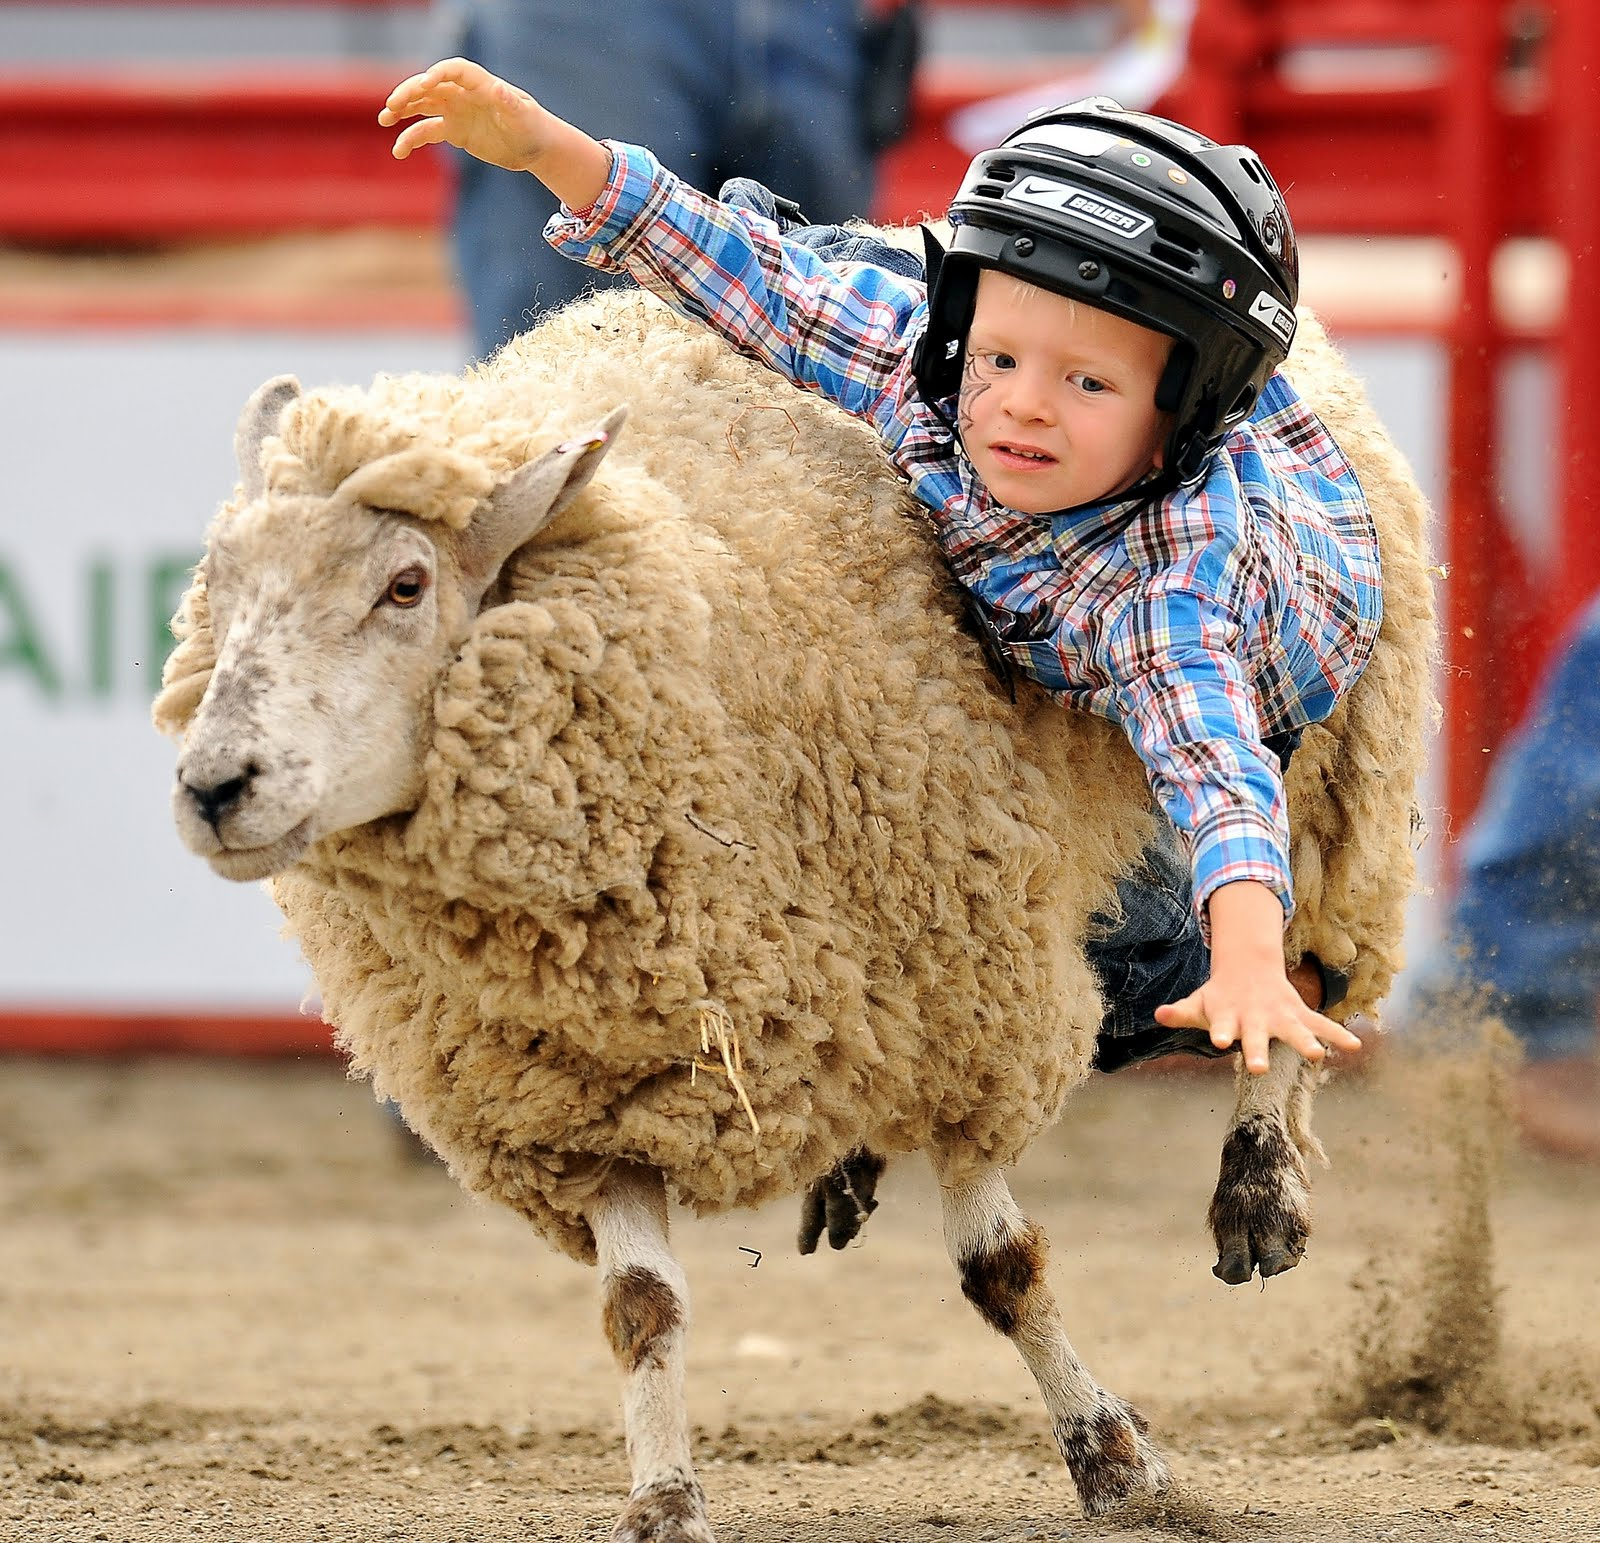 MY EXTRA TWO BITS: MUTTON BUSTIN' IN CLOVERDALE!